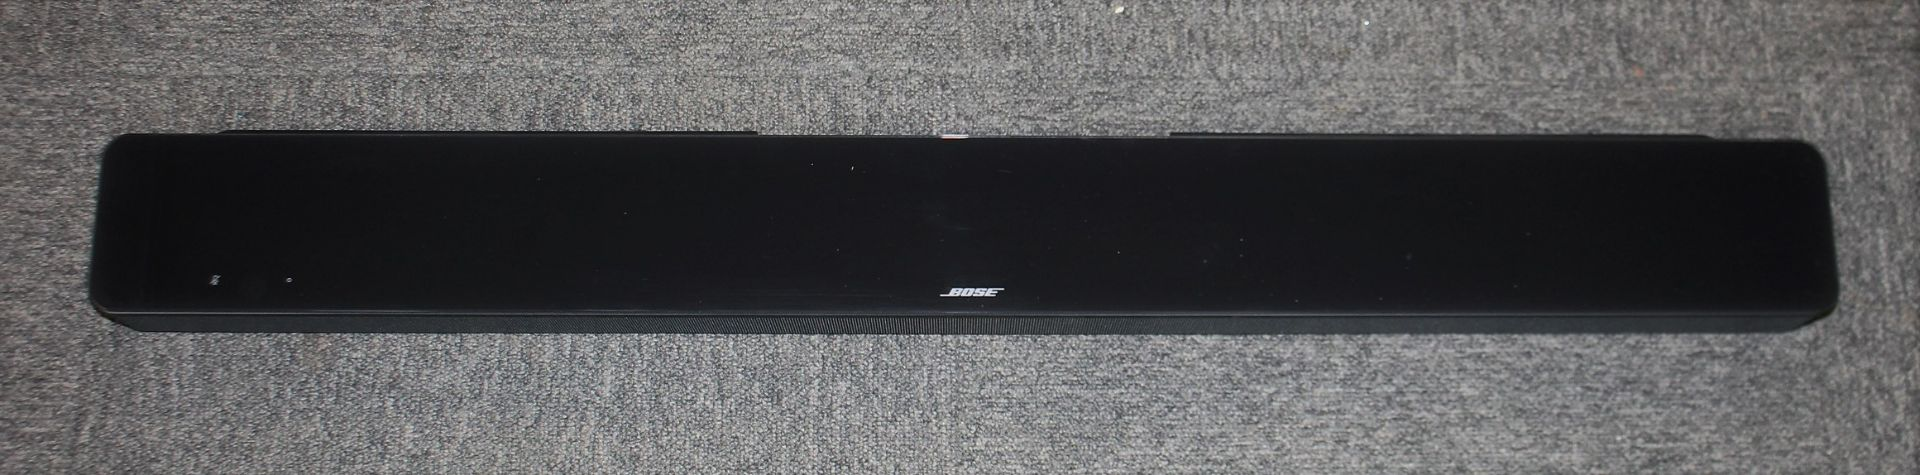 COLLECTION ONLY: A factory refurbished Bose Soundbar 700 in Black (Box damaged).